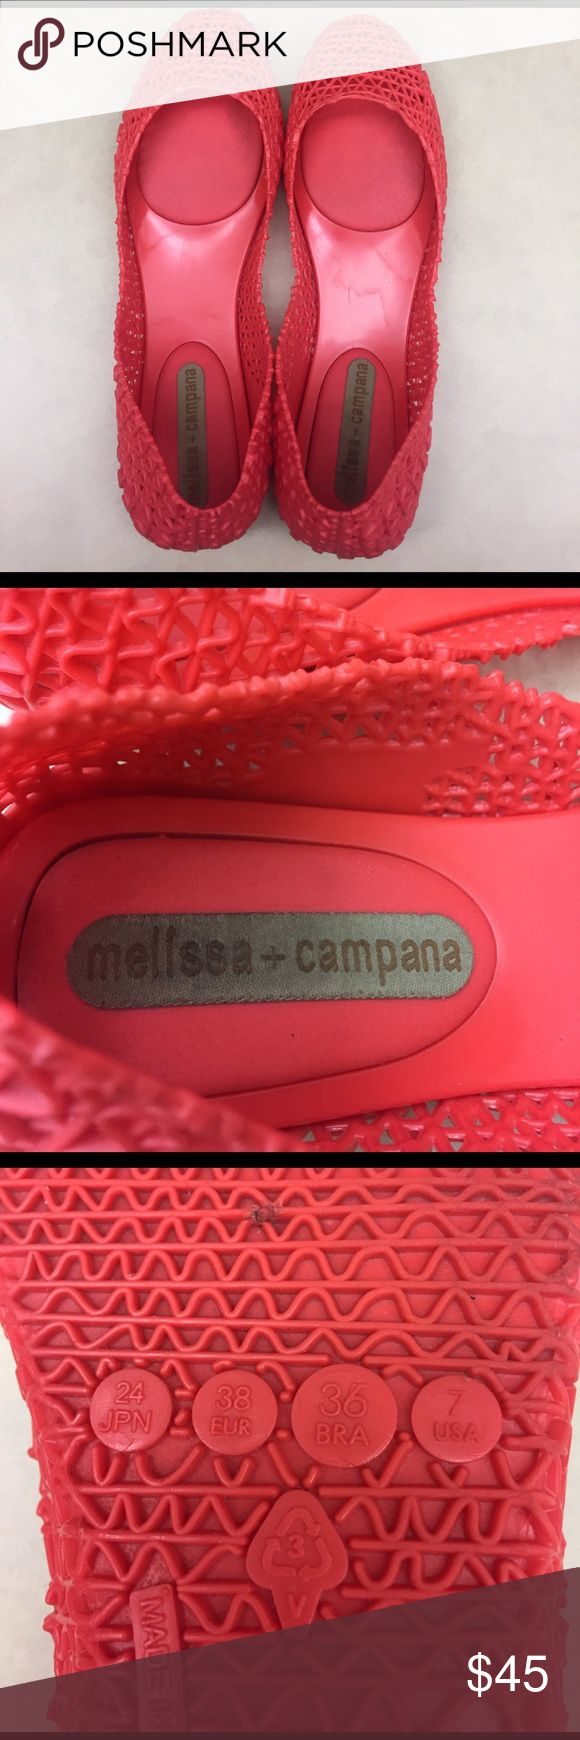 Melissa + Campana jelly flats Melissa + Campana jelly flats. Worn a couple of times. Cute with jeans, shorts, maxi dresses, skirts etc.  Very versatile and super comfortable! Melissa Shoes Flats & Loafers